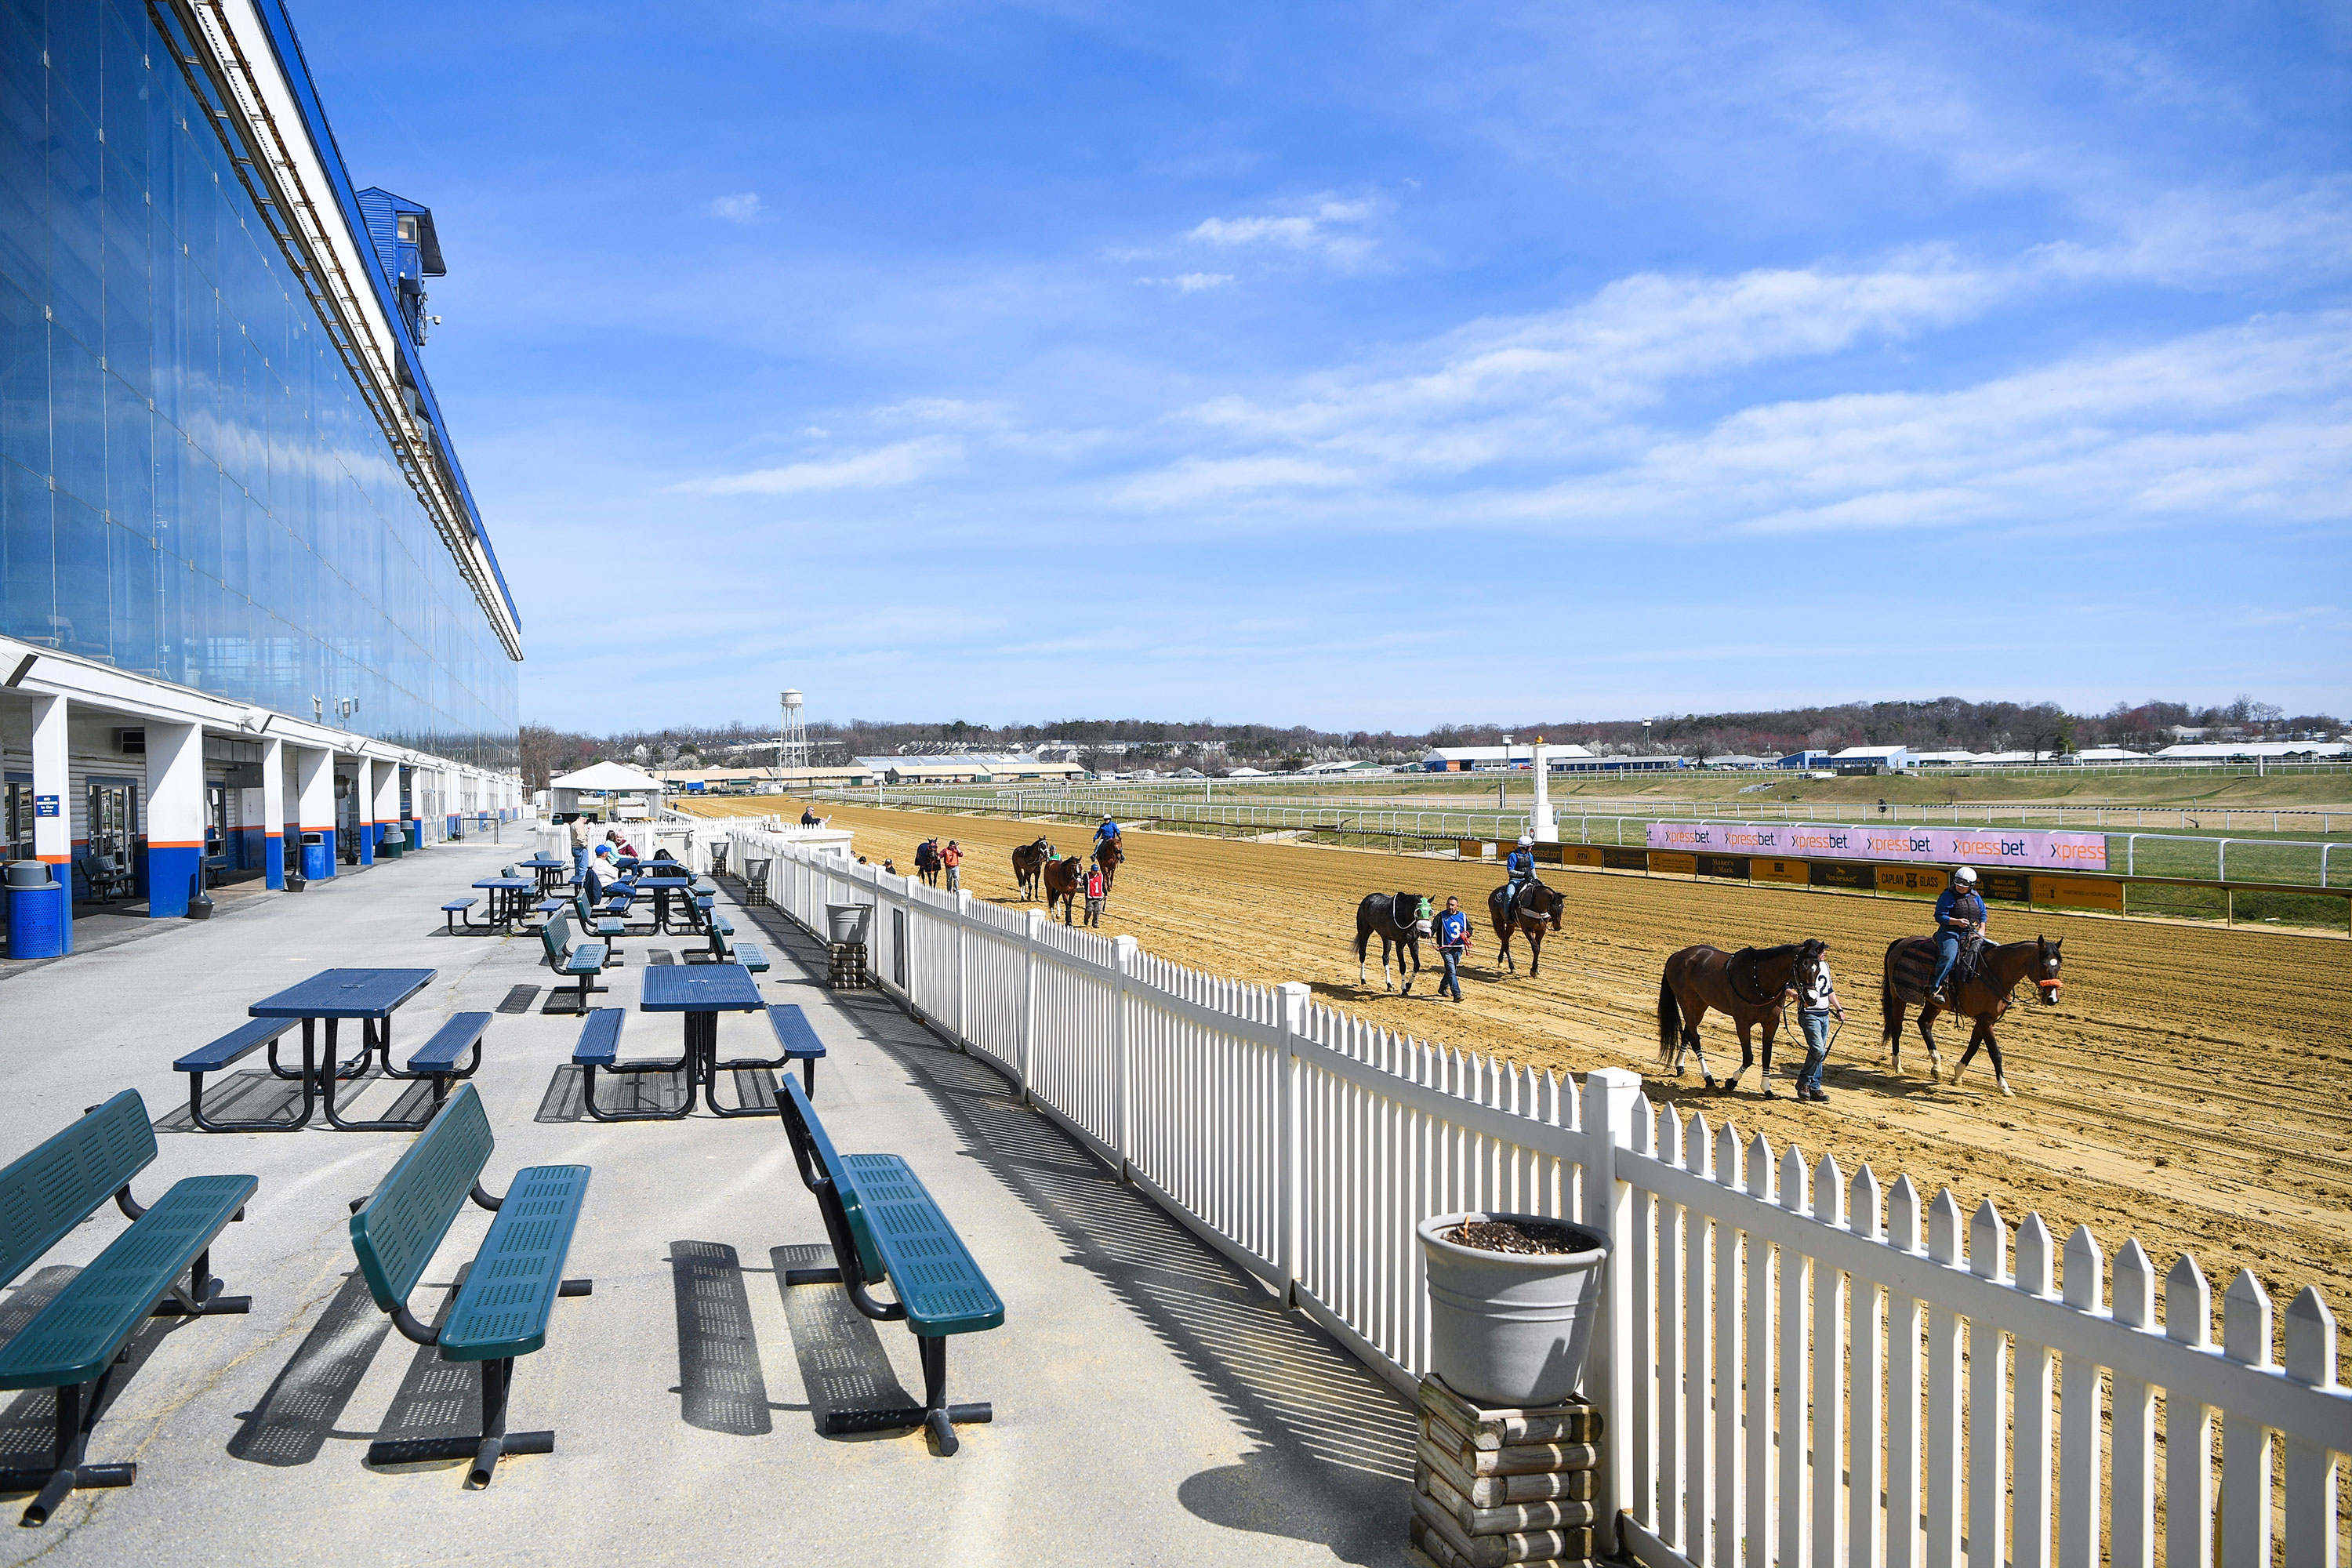 Horses are led across the track in front of an empty grandstand area before racing at Laurel Park Race Track, in Laurel, Maryland, on March 14.